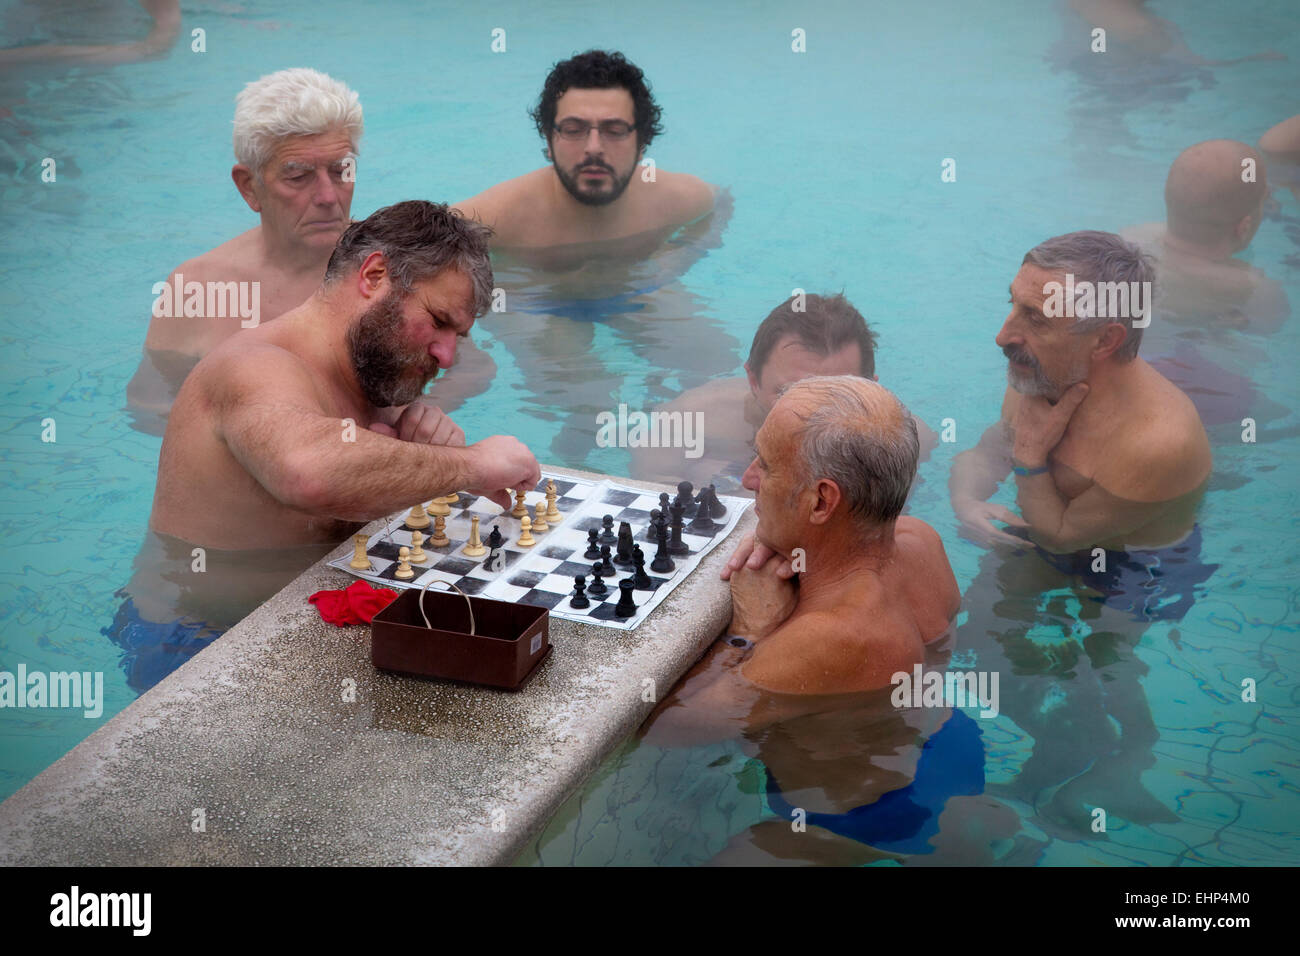 Men playing with